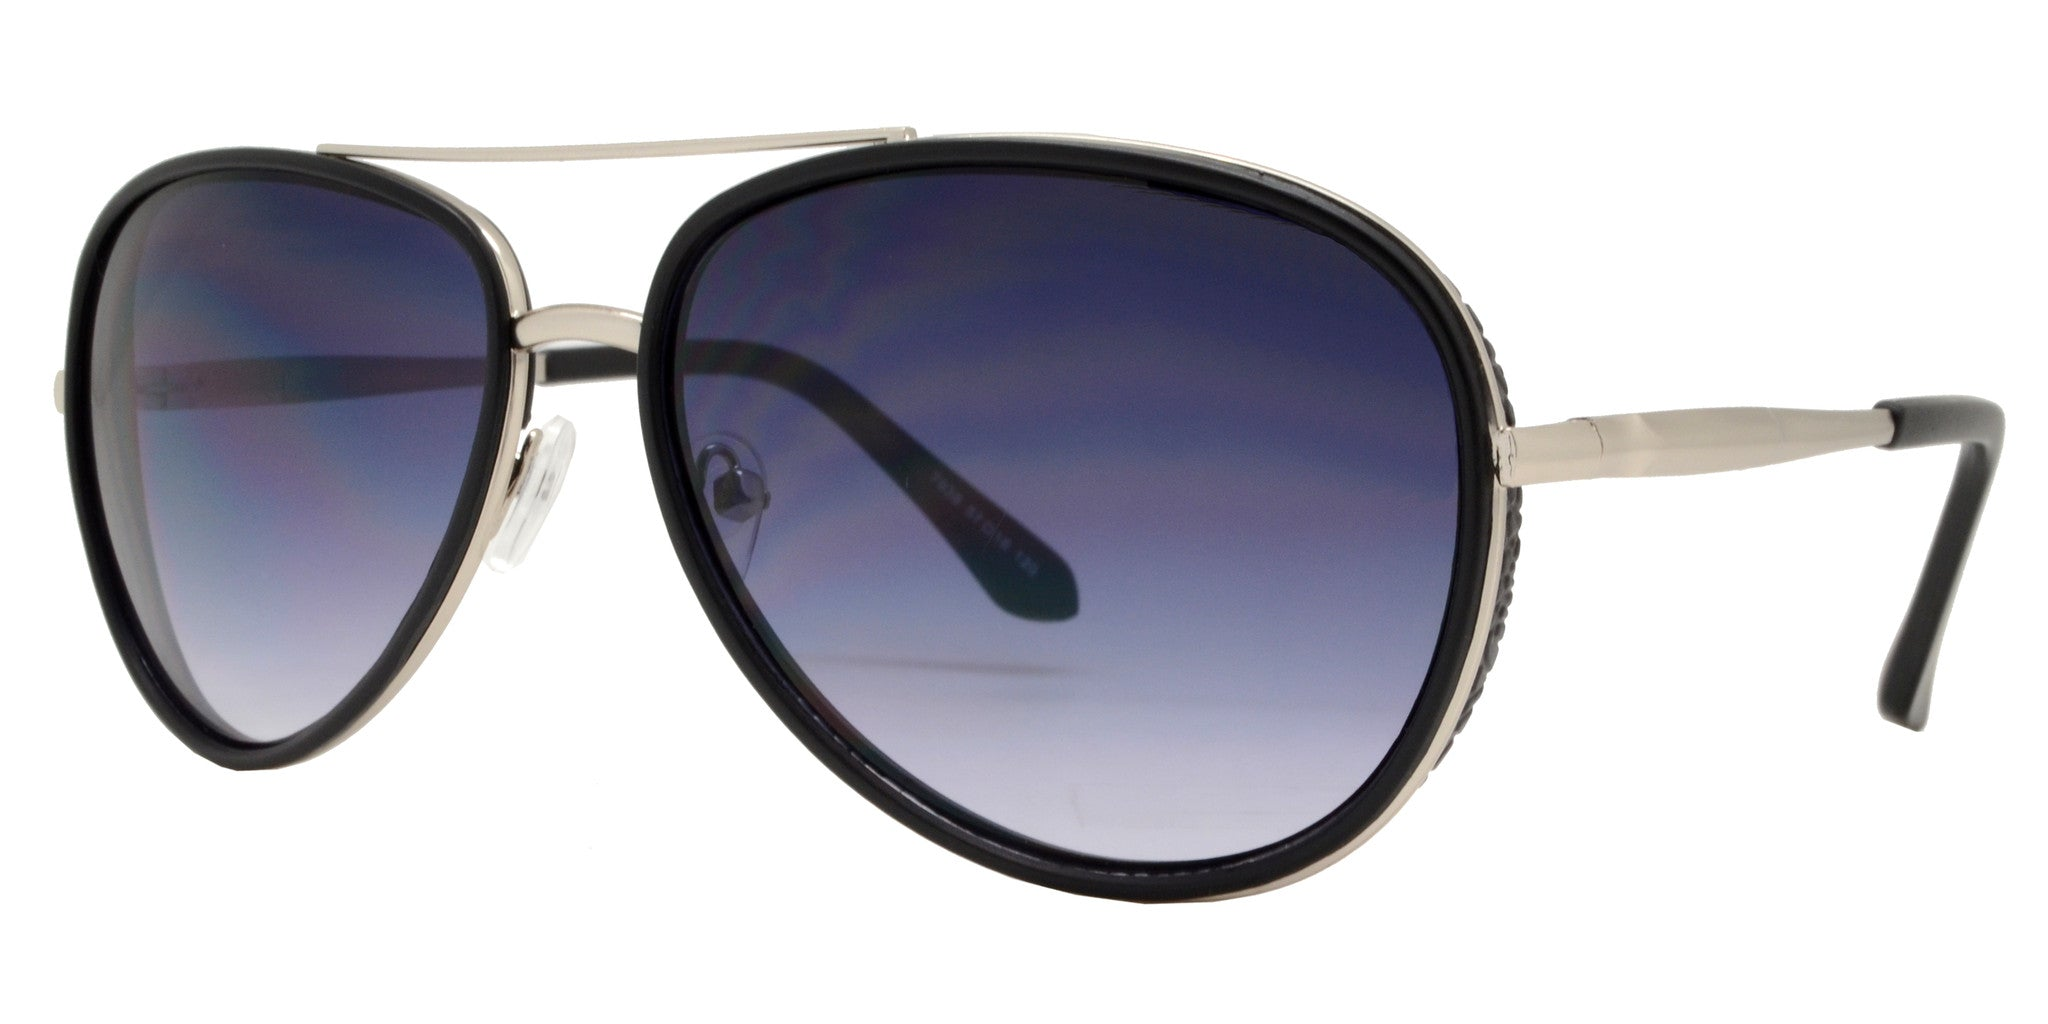 Dynasol Eyewear - Wholesale Sunglasses - 7938 - Retro Plastic Aviator Sunglasses - sunglasses